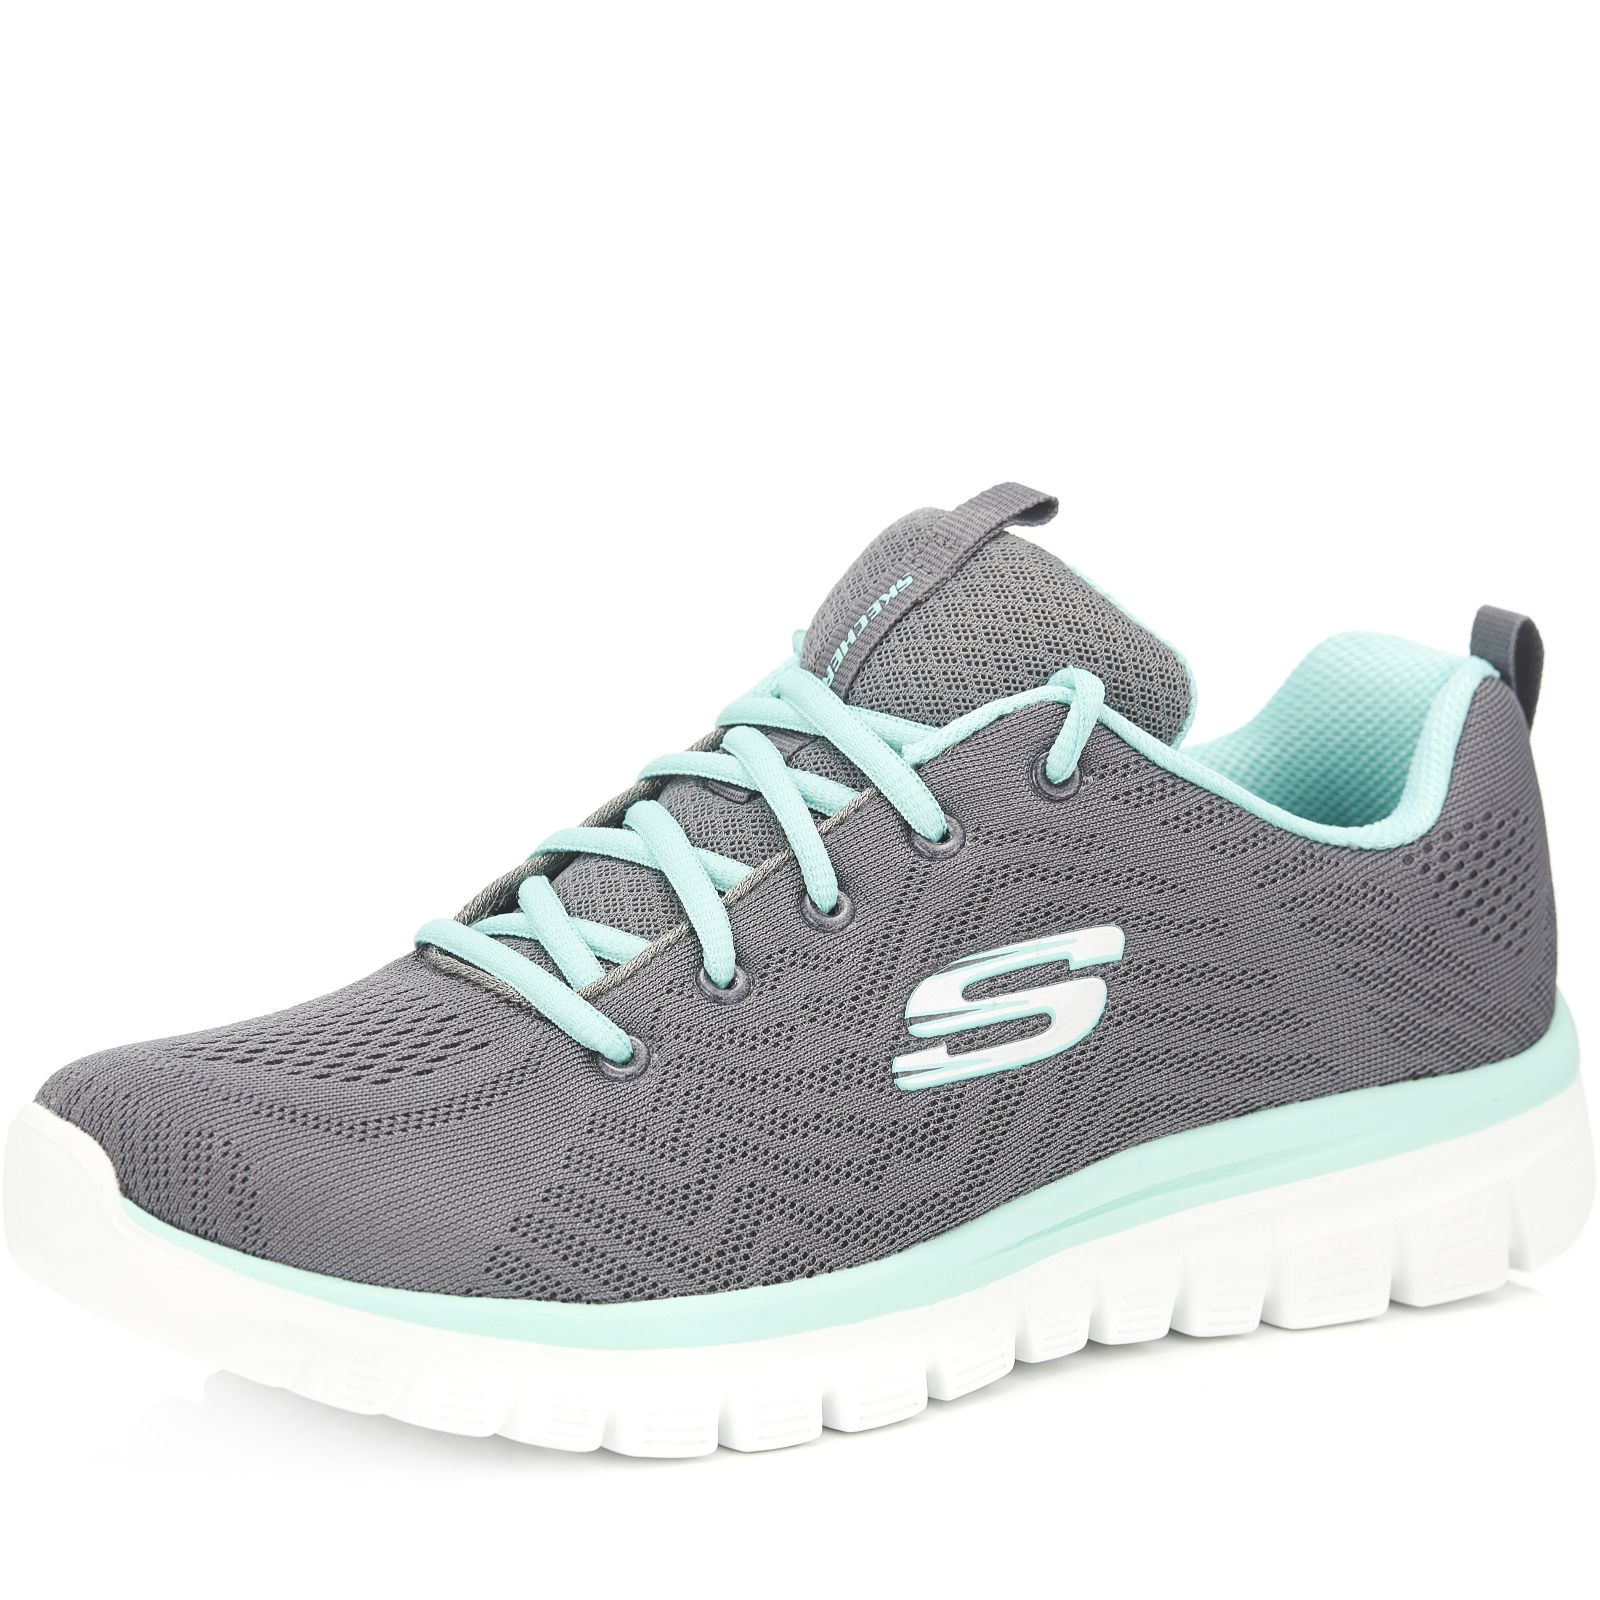 Skechers Graceful Engineered Mesh Lace-Up Trainer with Memory Foam - QVC UK